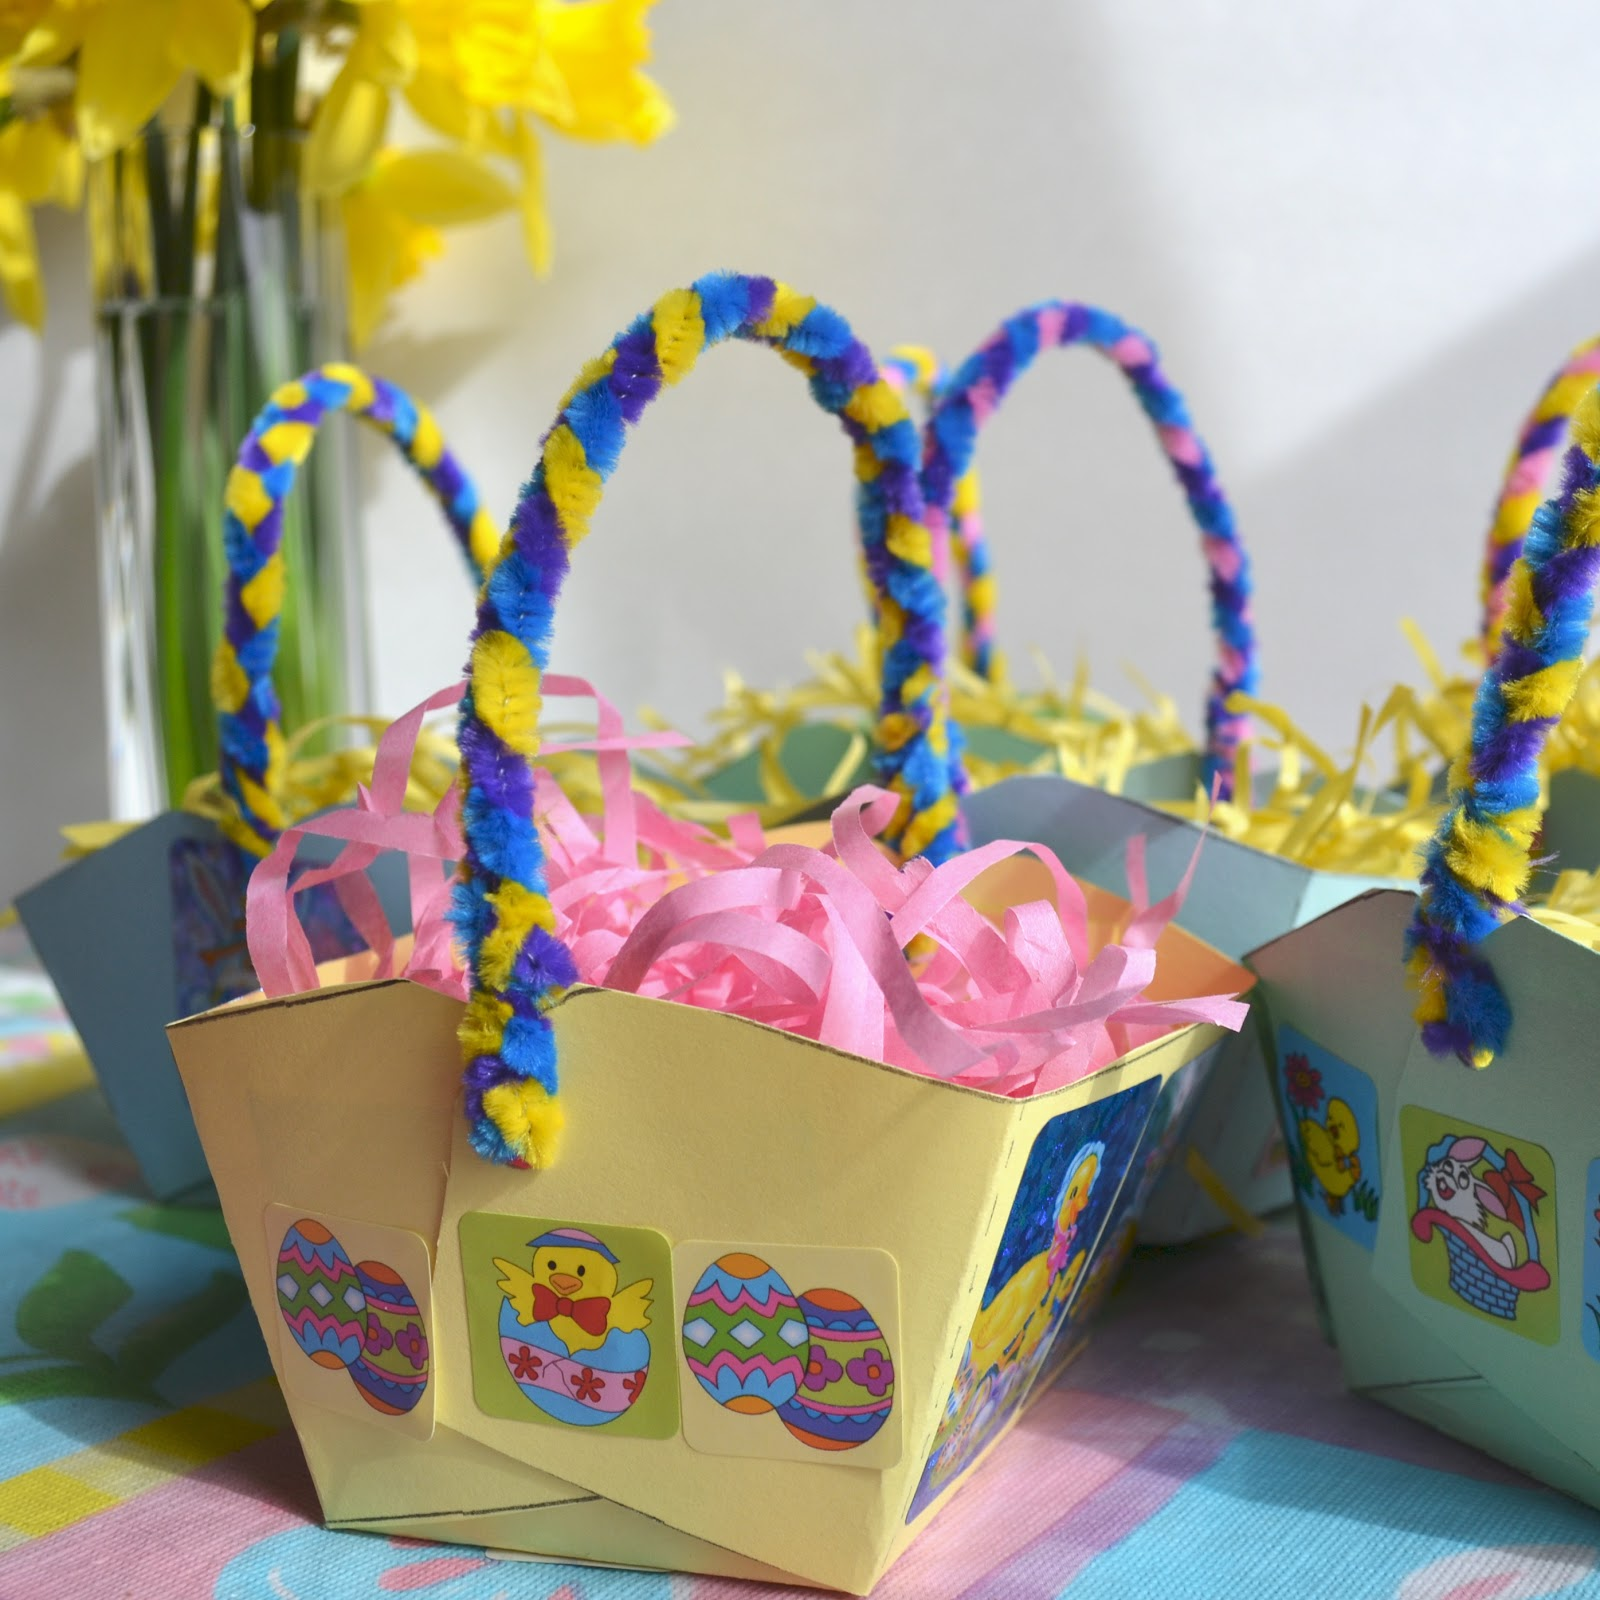 East coast mommy 10 awesome easter ideas for kids - Easter basket craft ideas ...